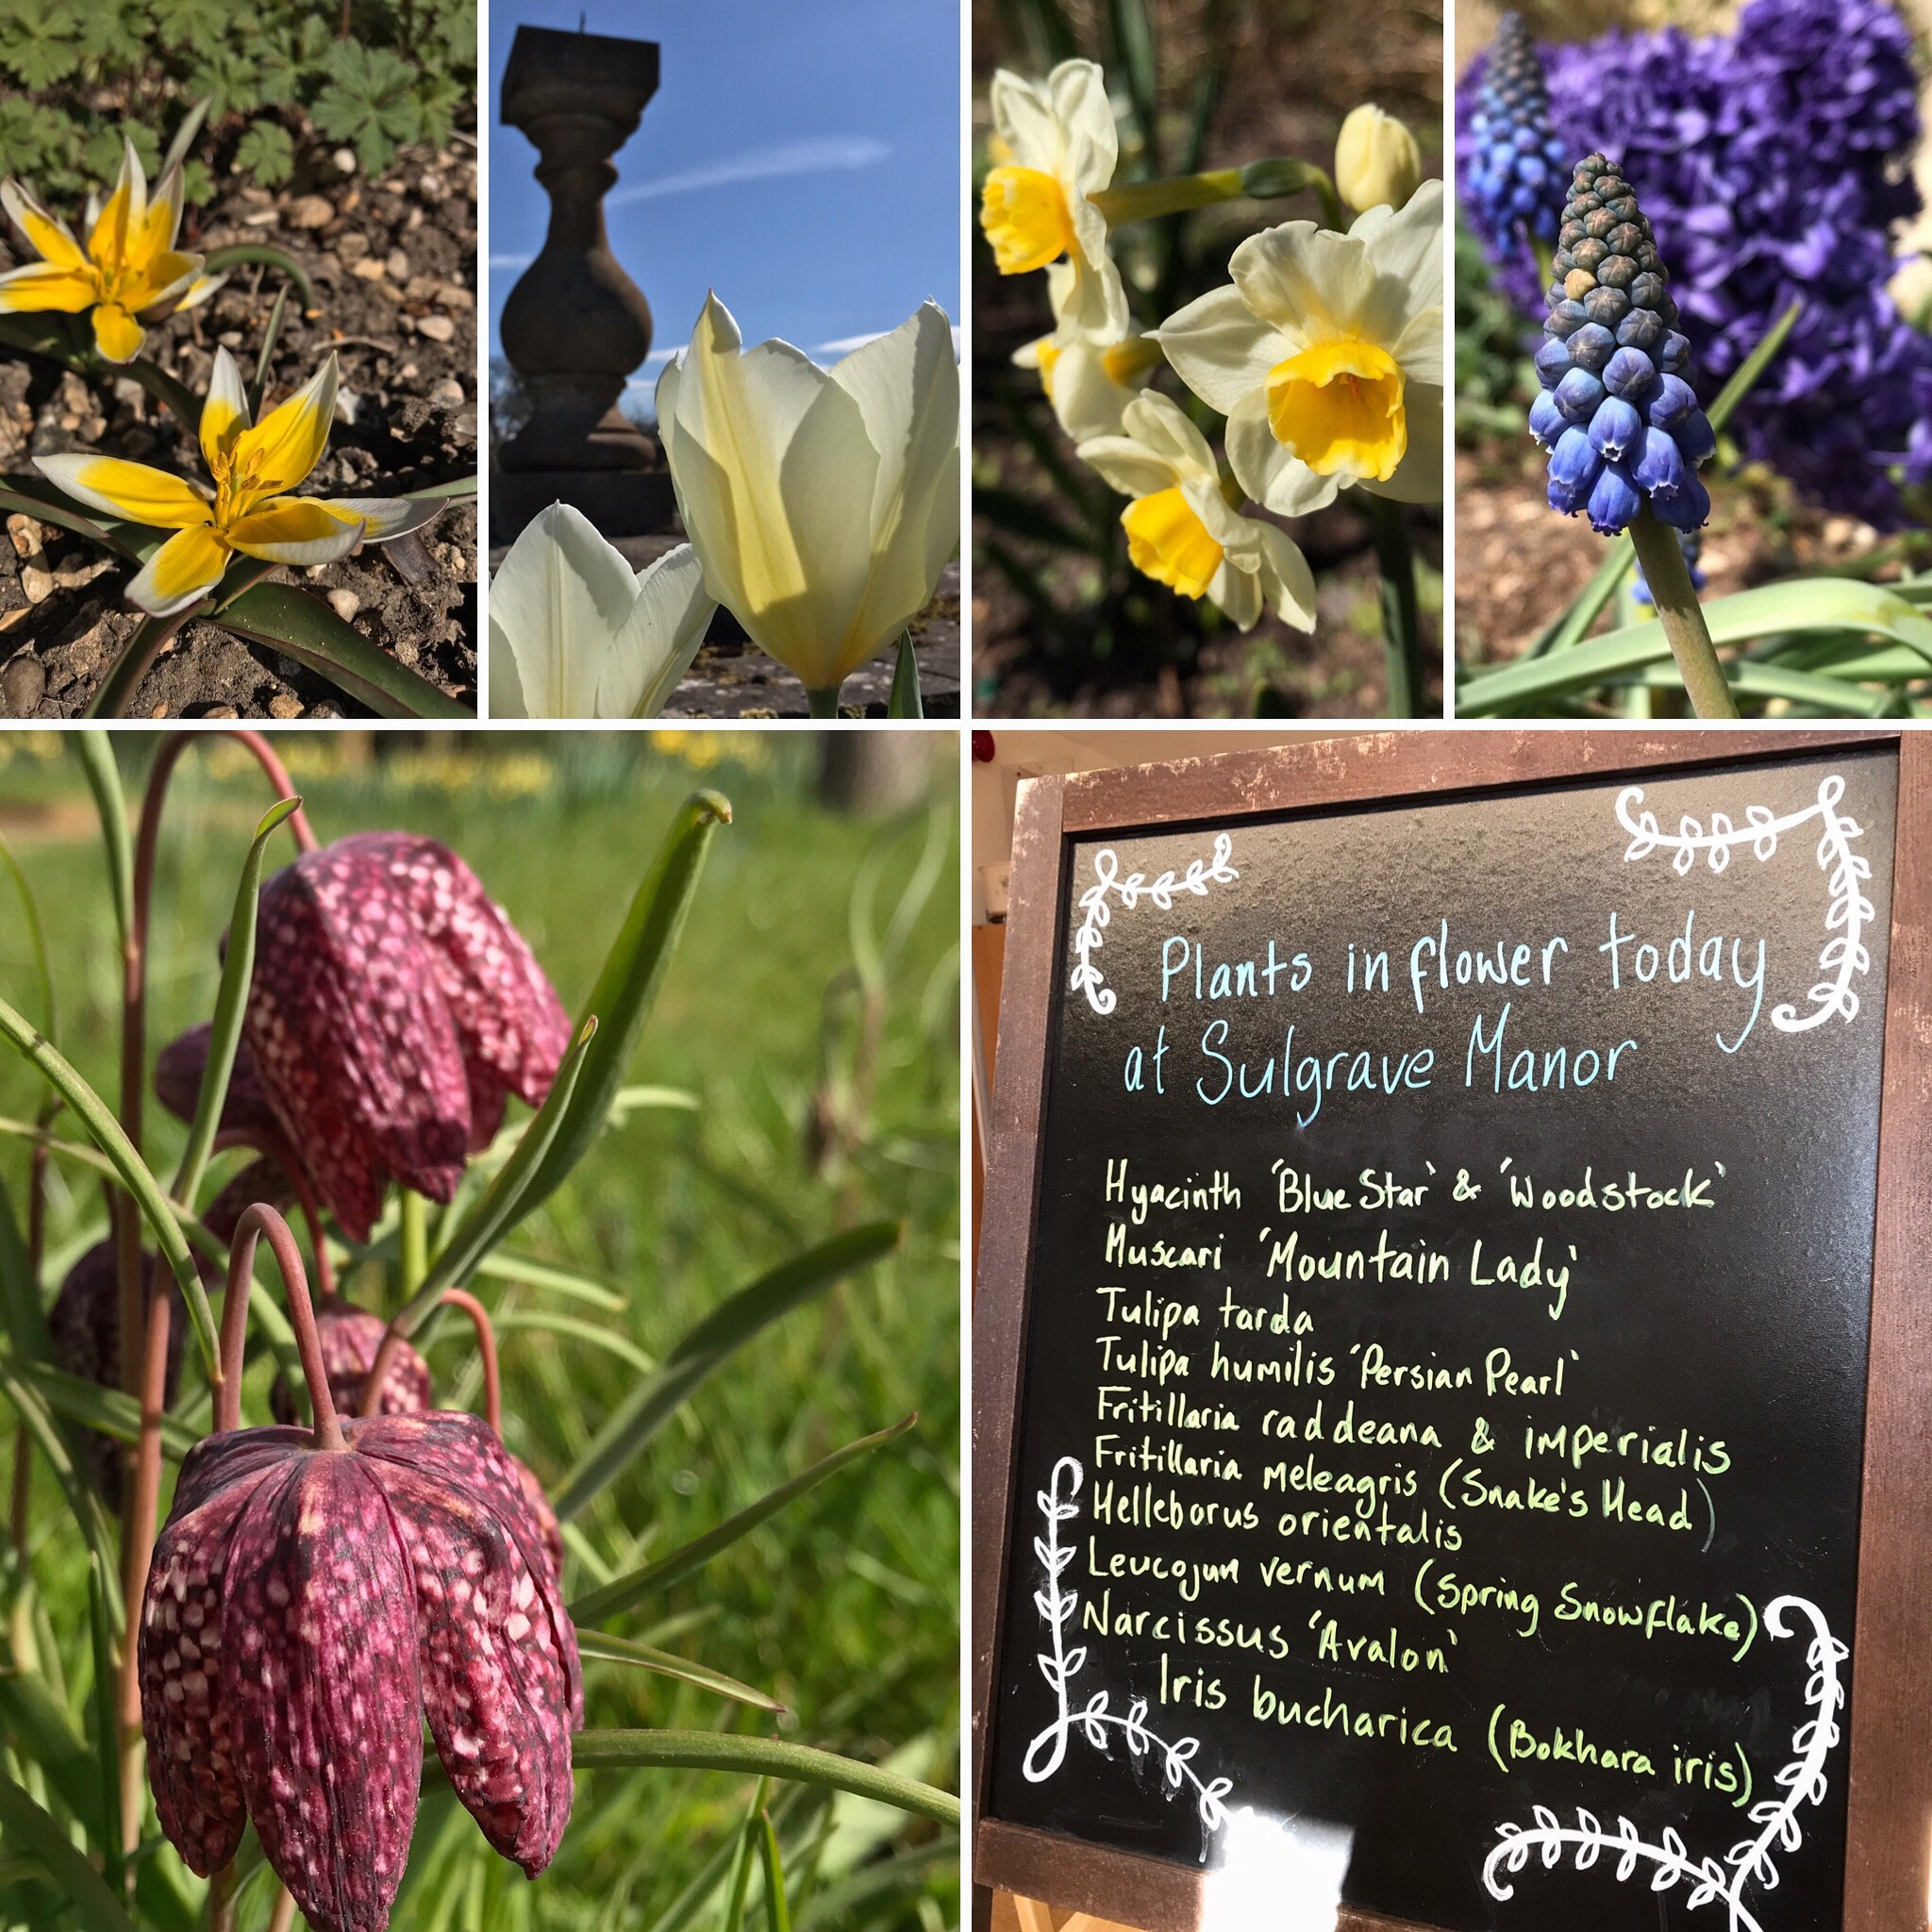 Flowers and a notice board at garden entrance to say what is in flower